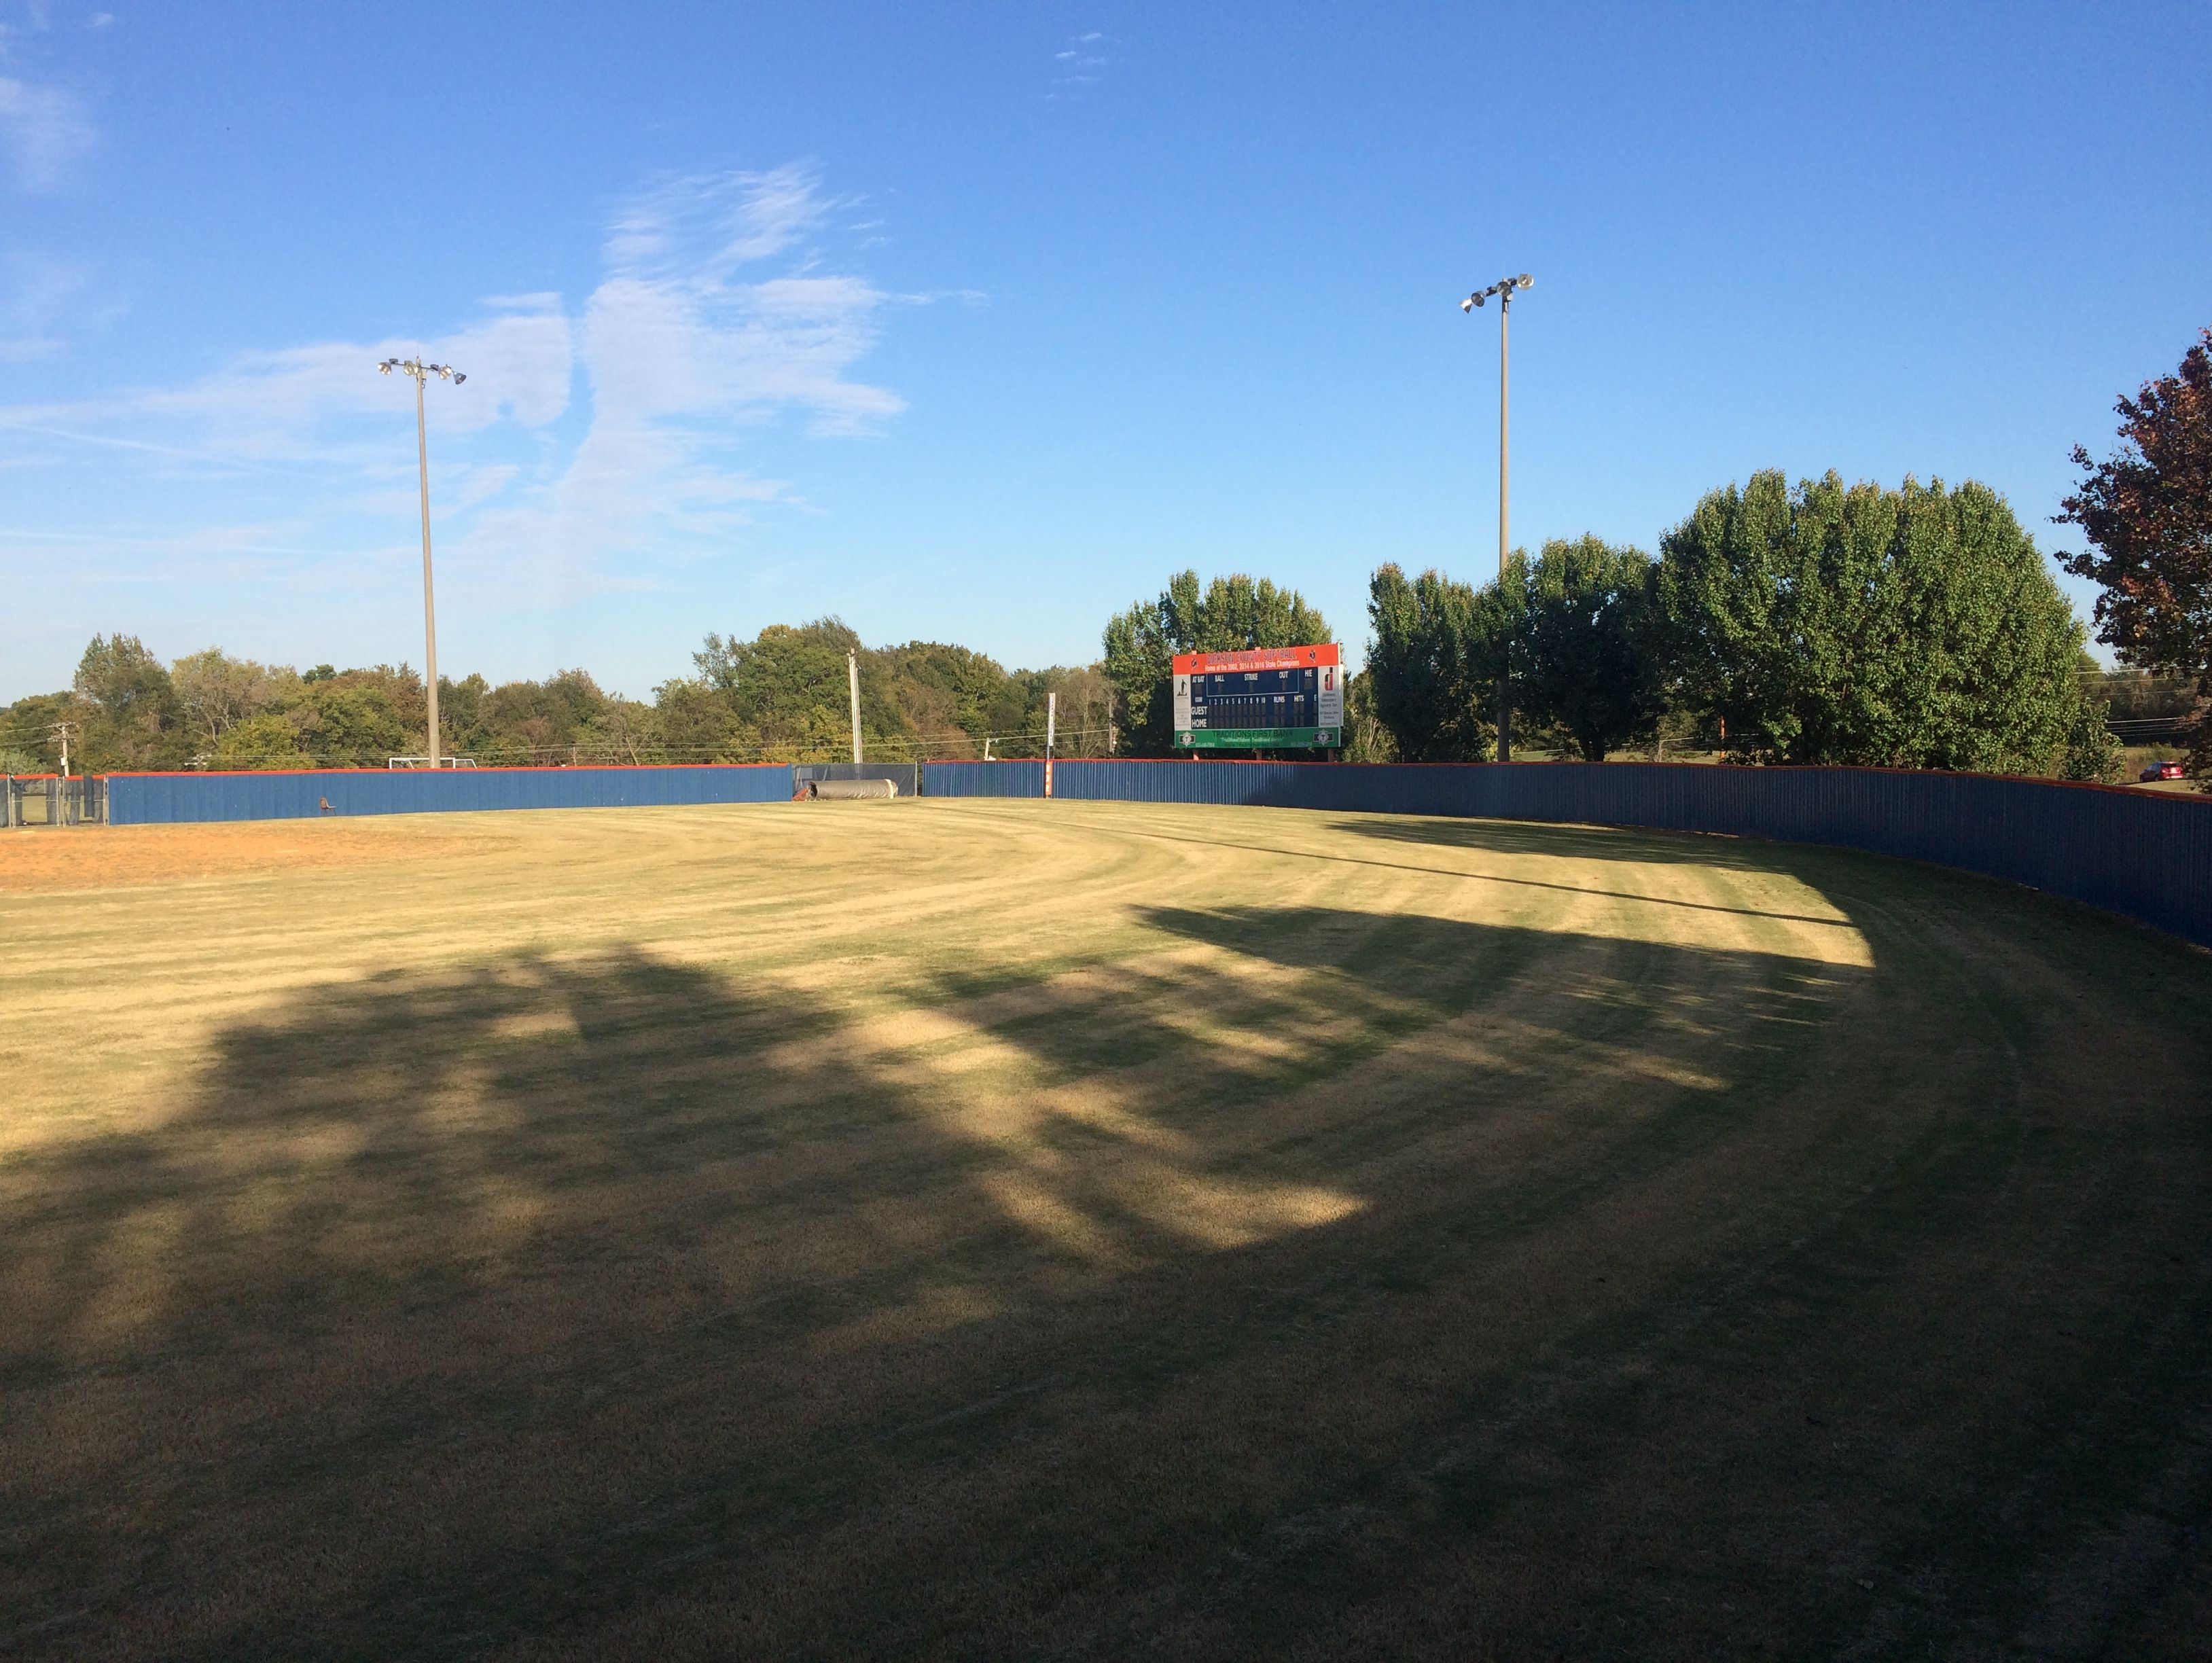 Dickson County's softball field will have a new drainage system put in place during the offseason.